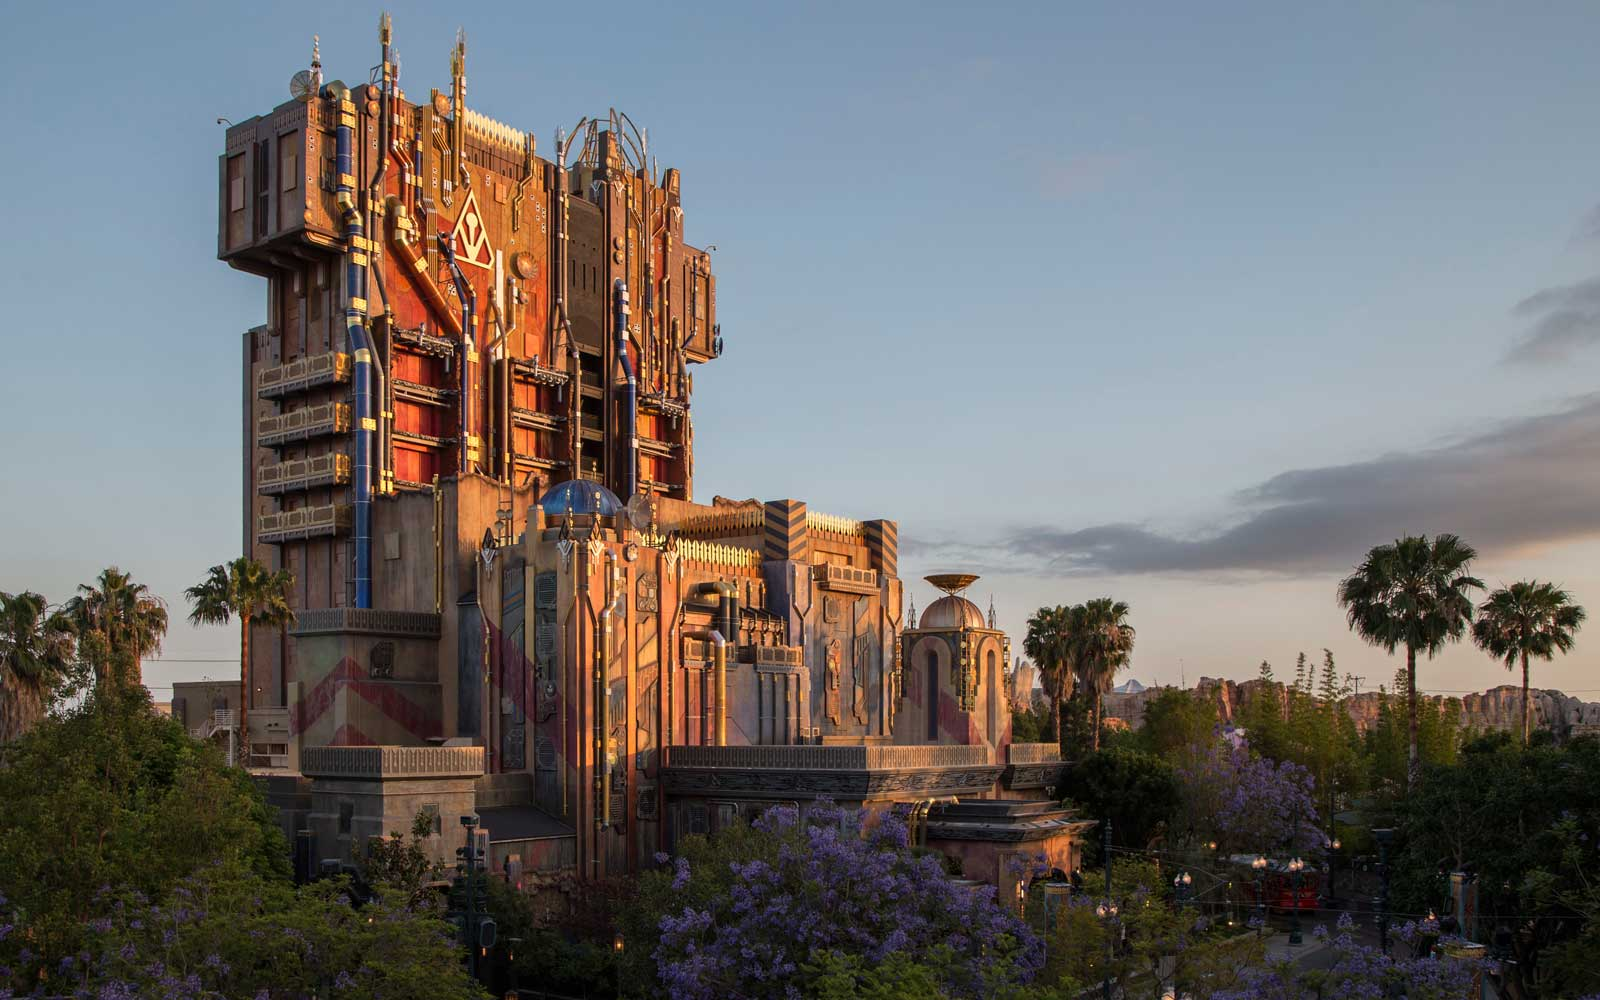 25 Easter Eggs You'll Want to Find Inside Disney's New 'Guardians of the Galaxy' Ride